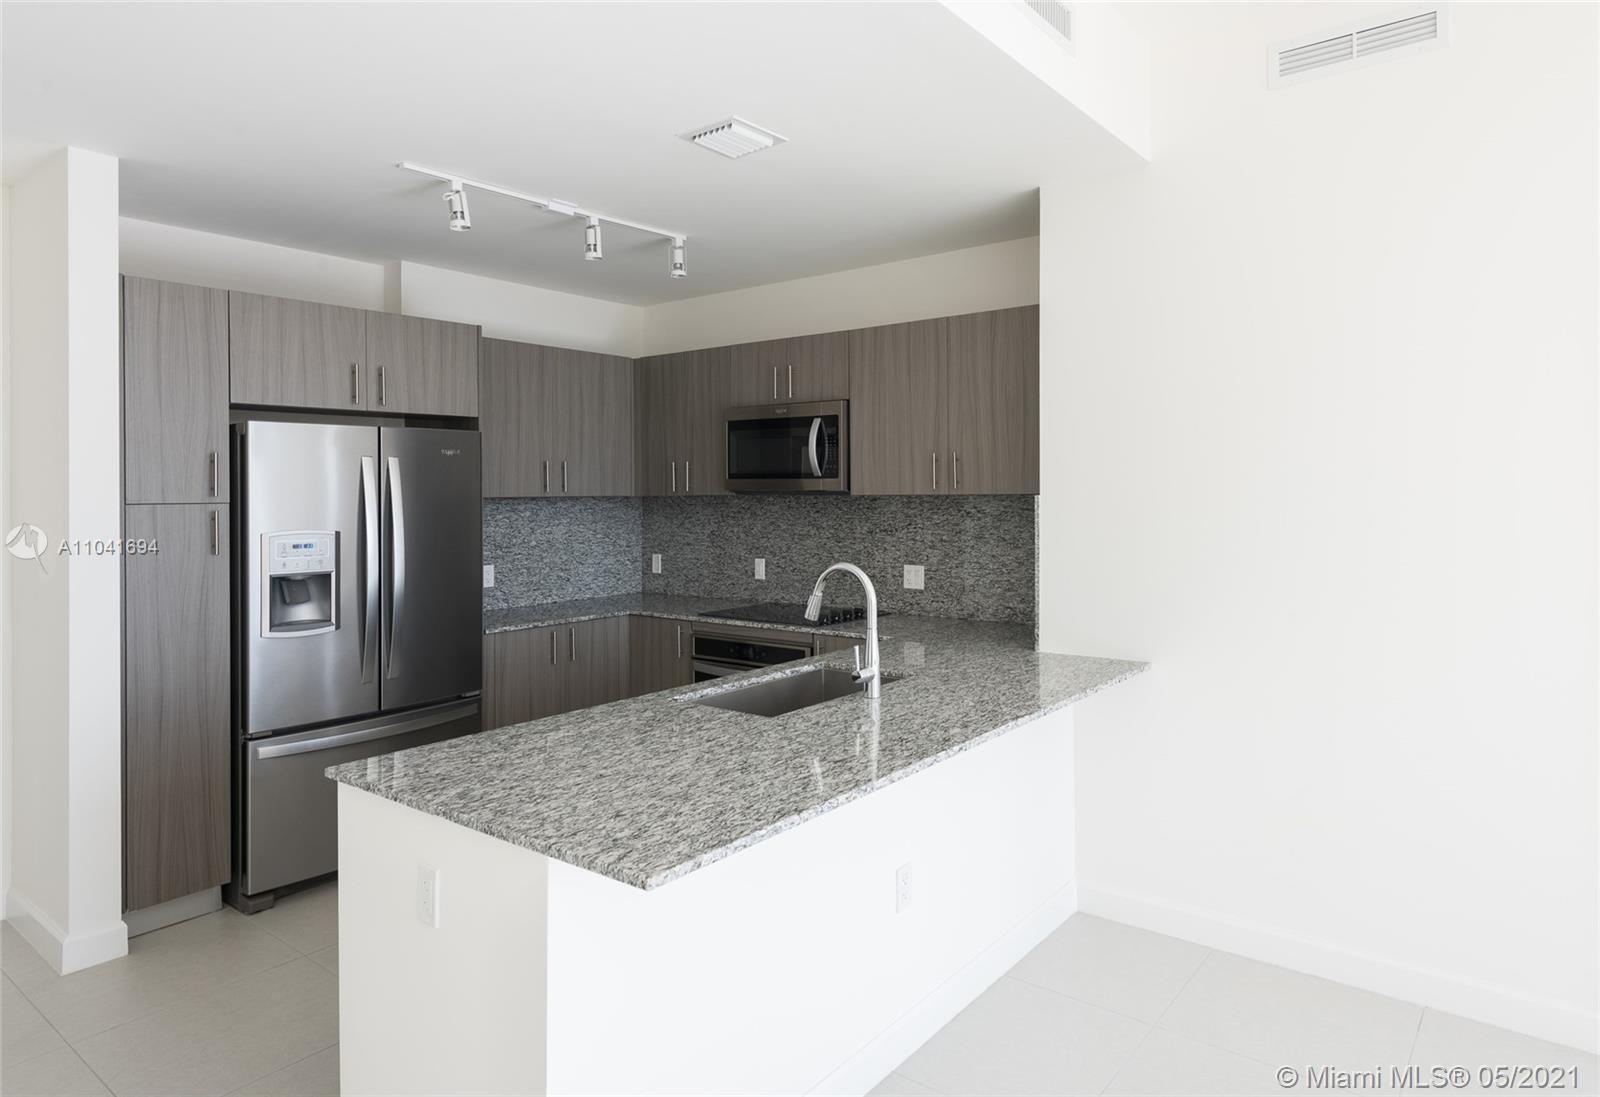 **NEW CONSTRUCTION** beautiful TOP FLOOR corner unit Pent House, only one in the market !!! Total living area (including balcony) according to arquitectural map of 1630 square feet with Golf course and Skyline views of Miami.  High ceilings, two central A/C unit, never lived on, hurricane rated windows, spacious laundry room, close to school and shopping areas. Amazing amenities on site.  Property on lockbox easy to show, PLEASE USE SHOWTIME FOR LOCKBOX CODE!!!